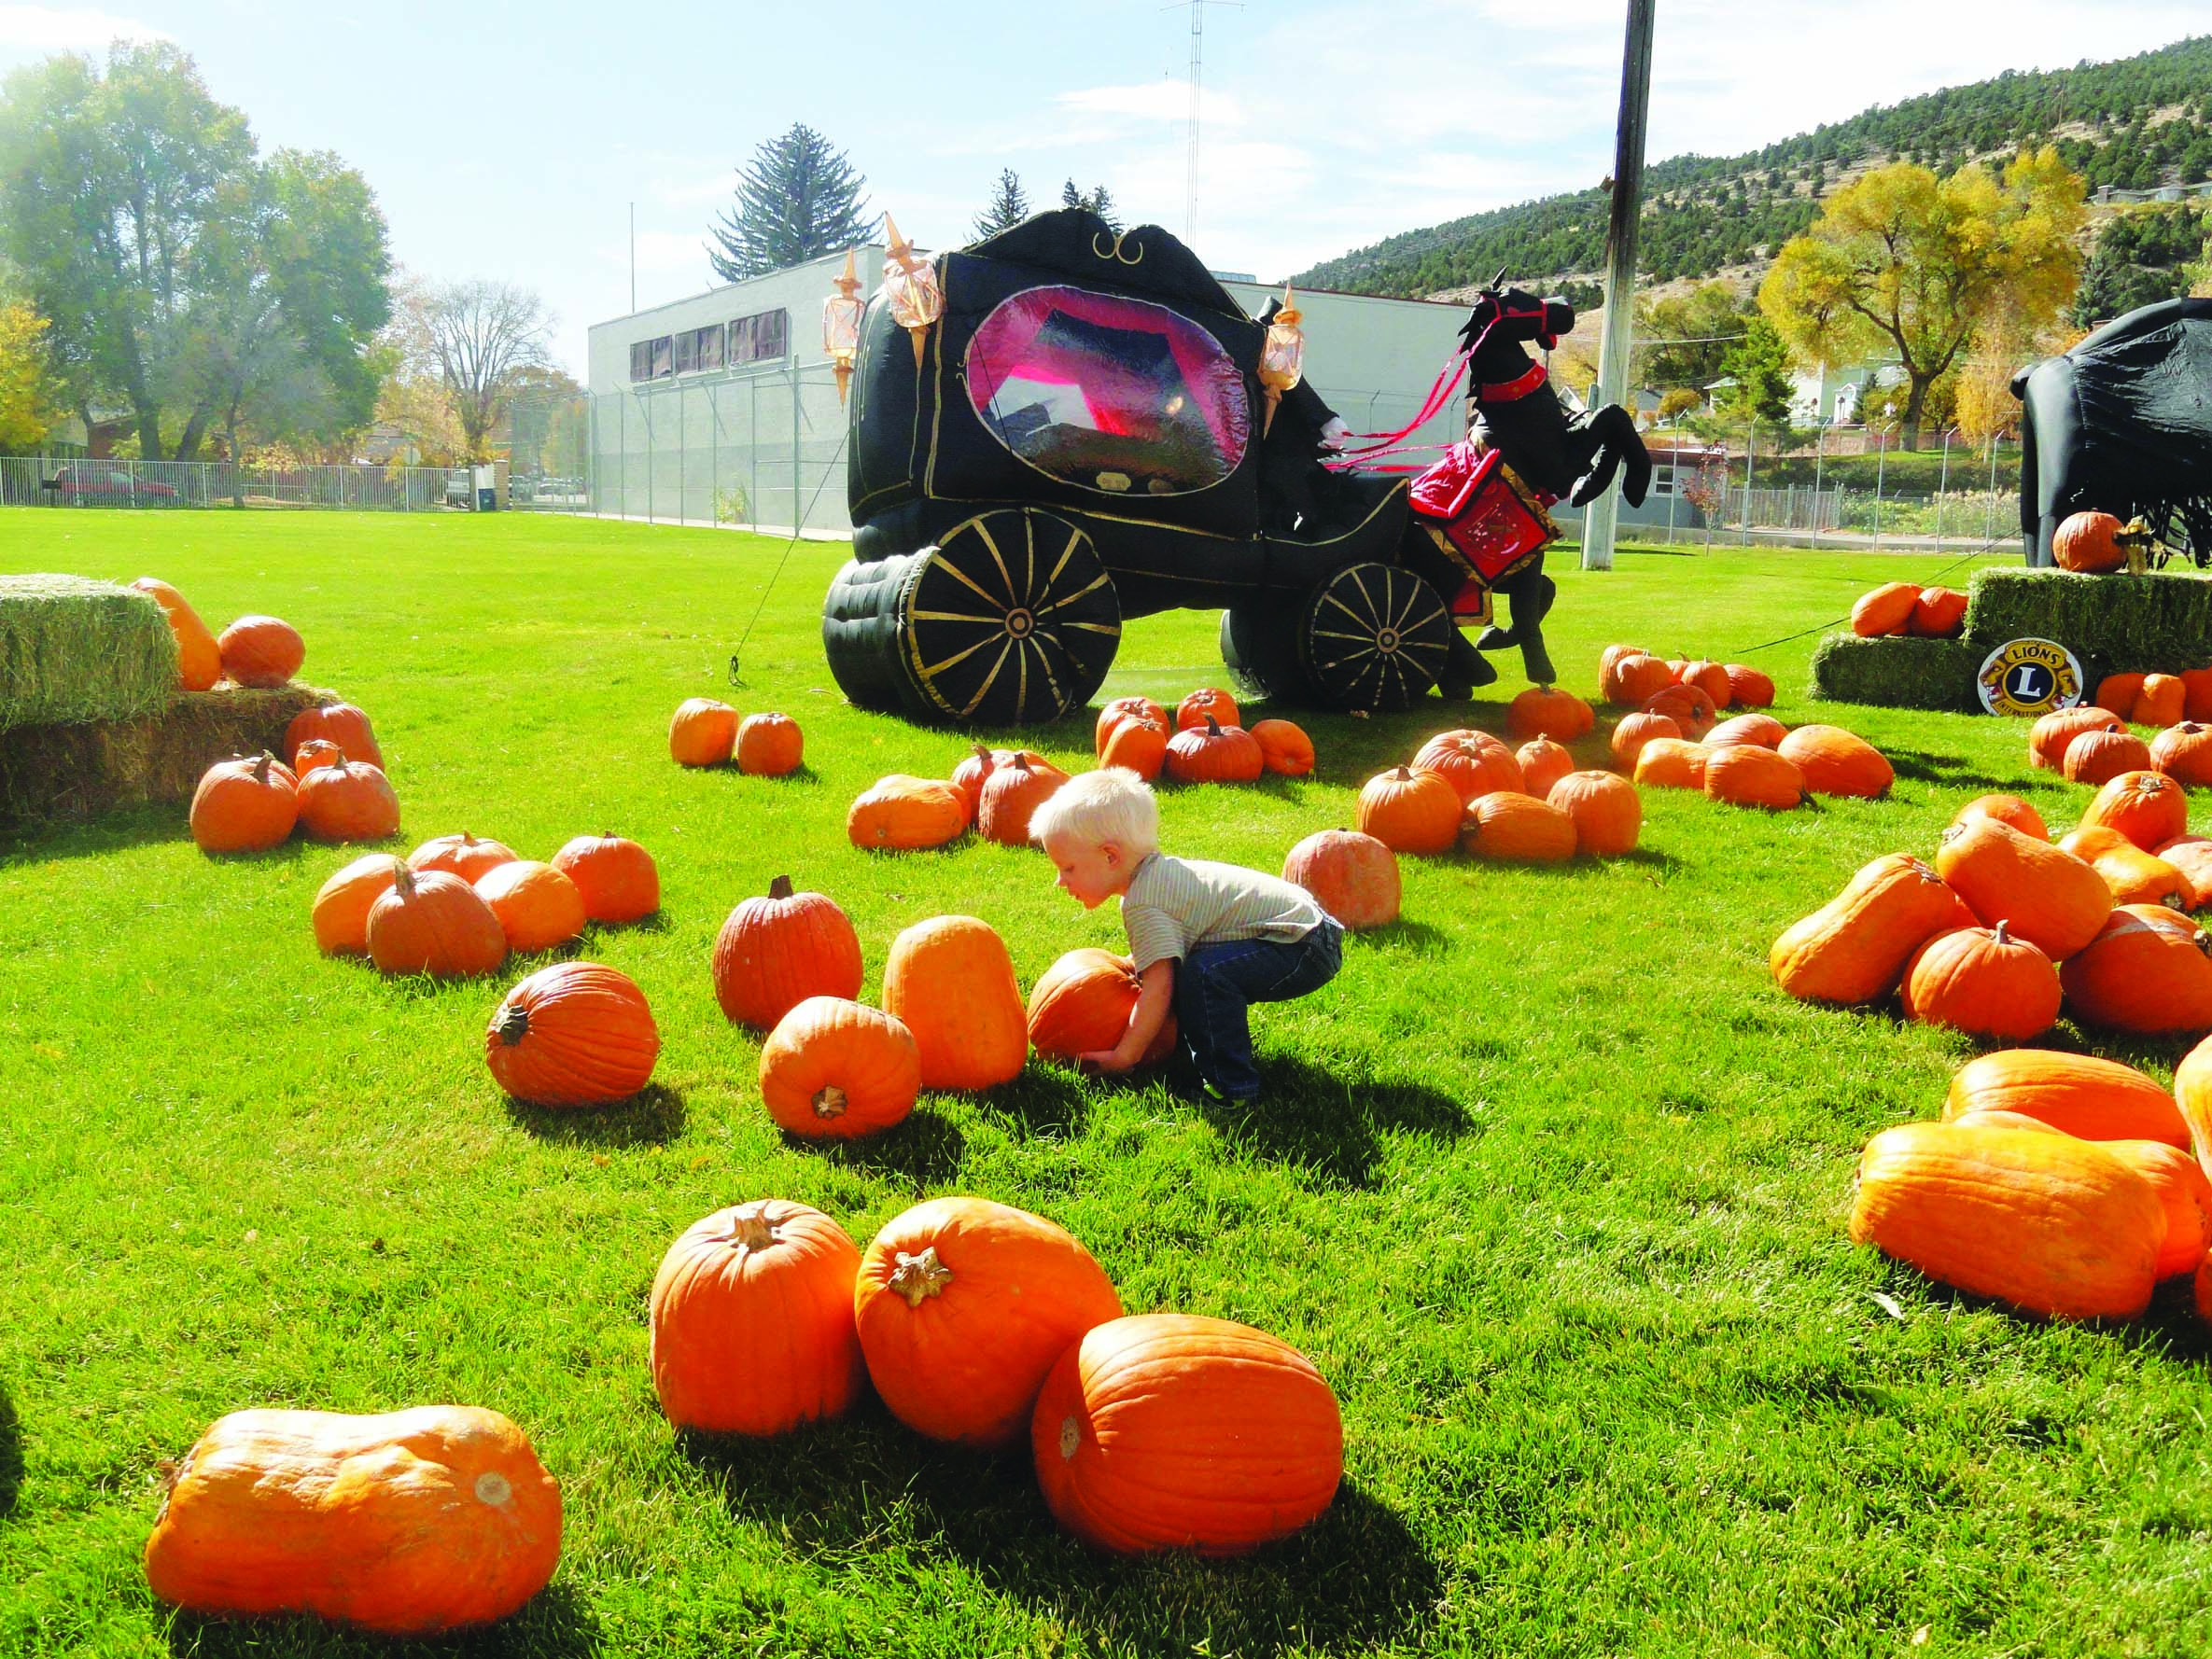 Punkin' Chunkin' returns on Saturday